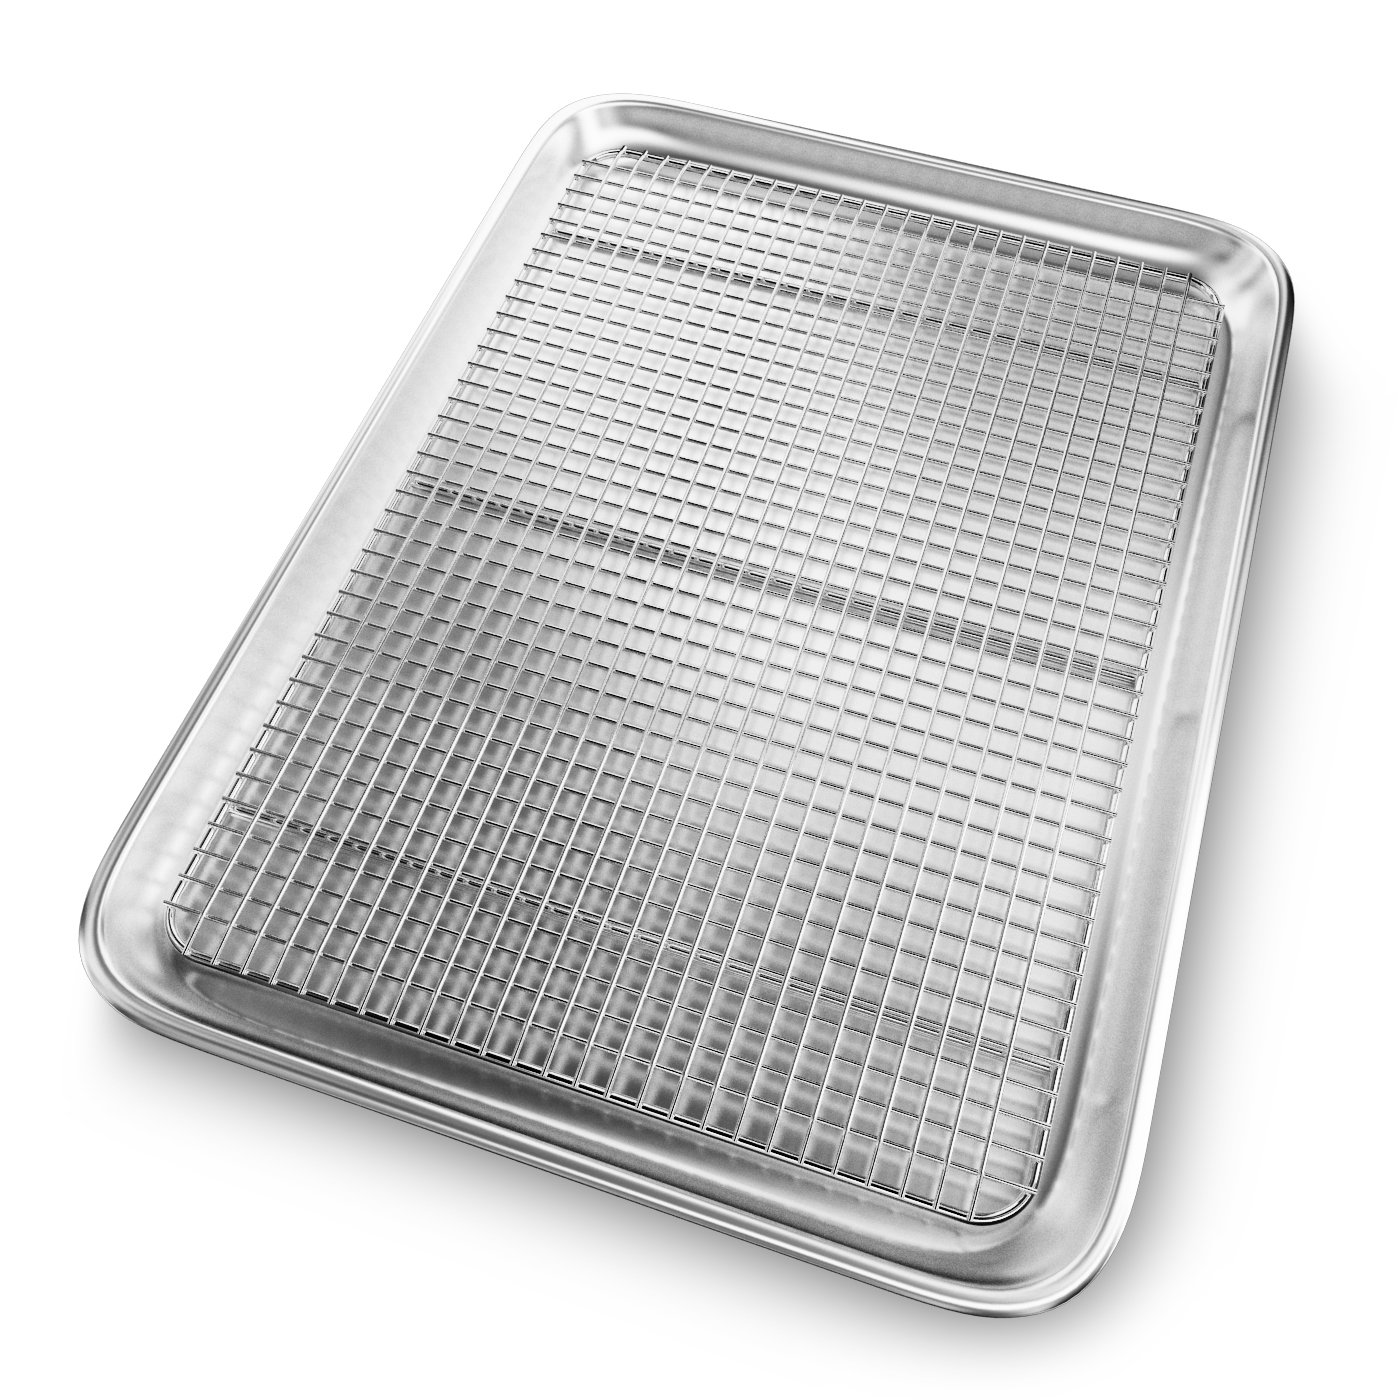 Baking Sheet with Cooling Rack - Aluminum Half Size Cookie Sheet 18 Inch x 13 Inch for Oven Use